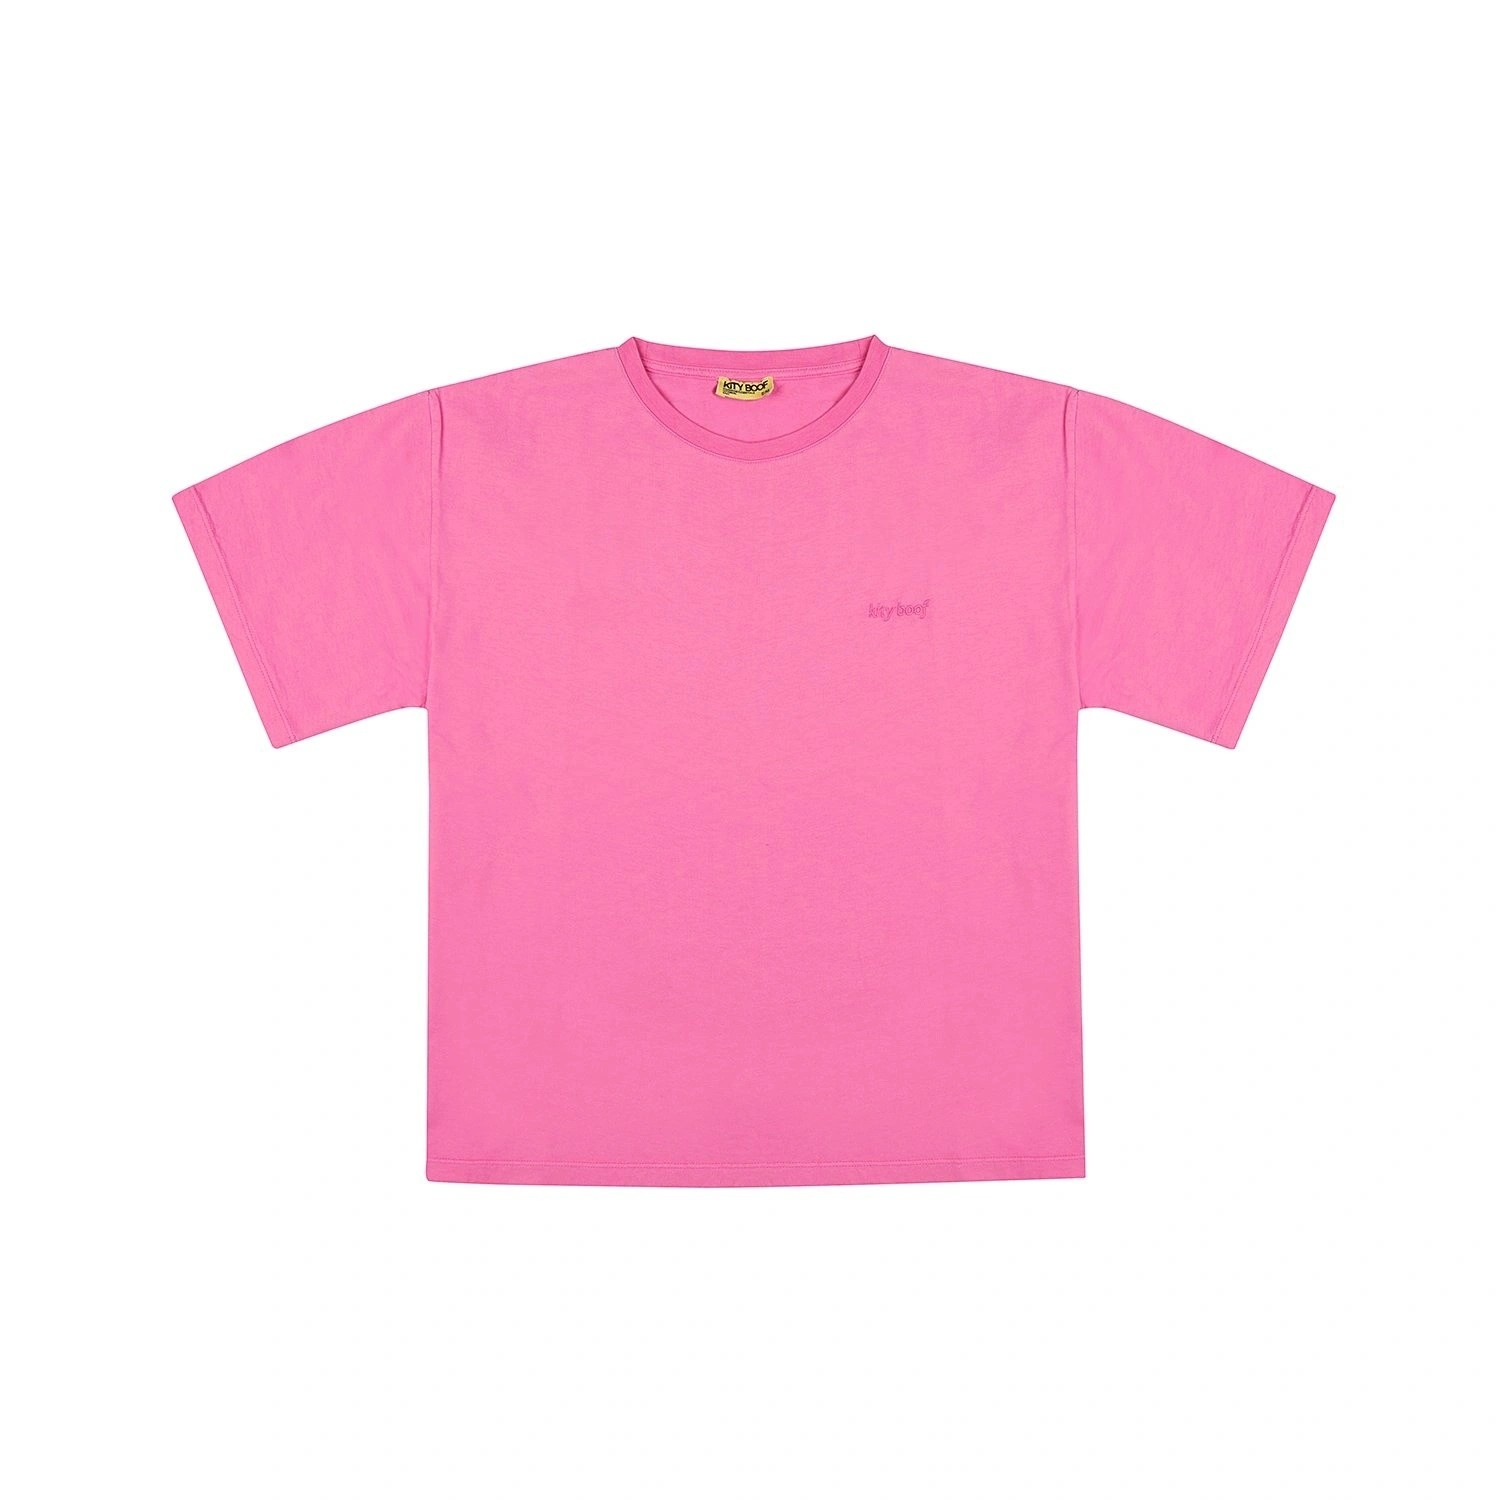 Kity Boof T-shirt Washed Candy Pink